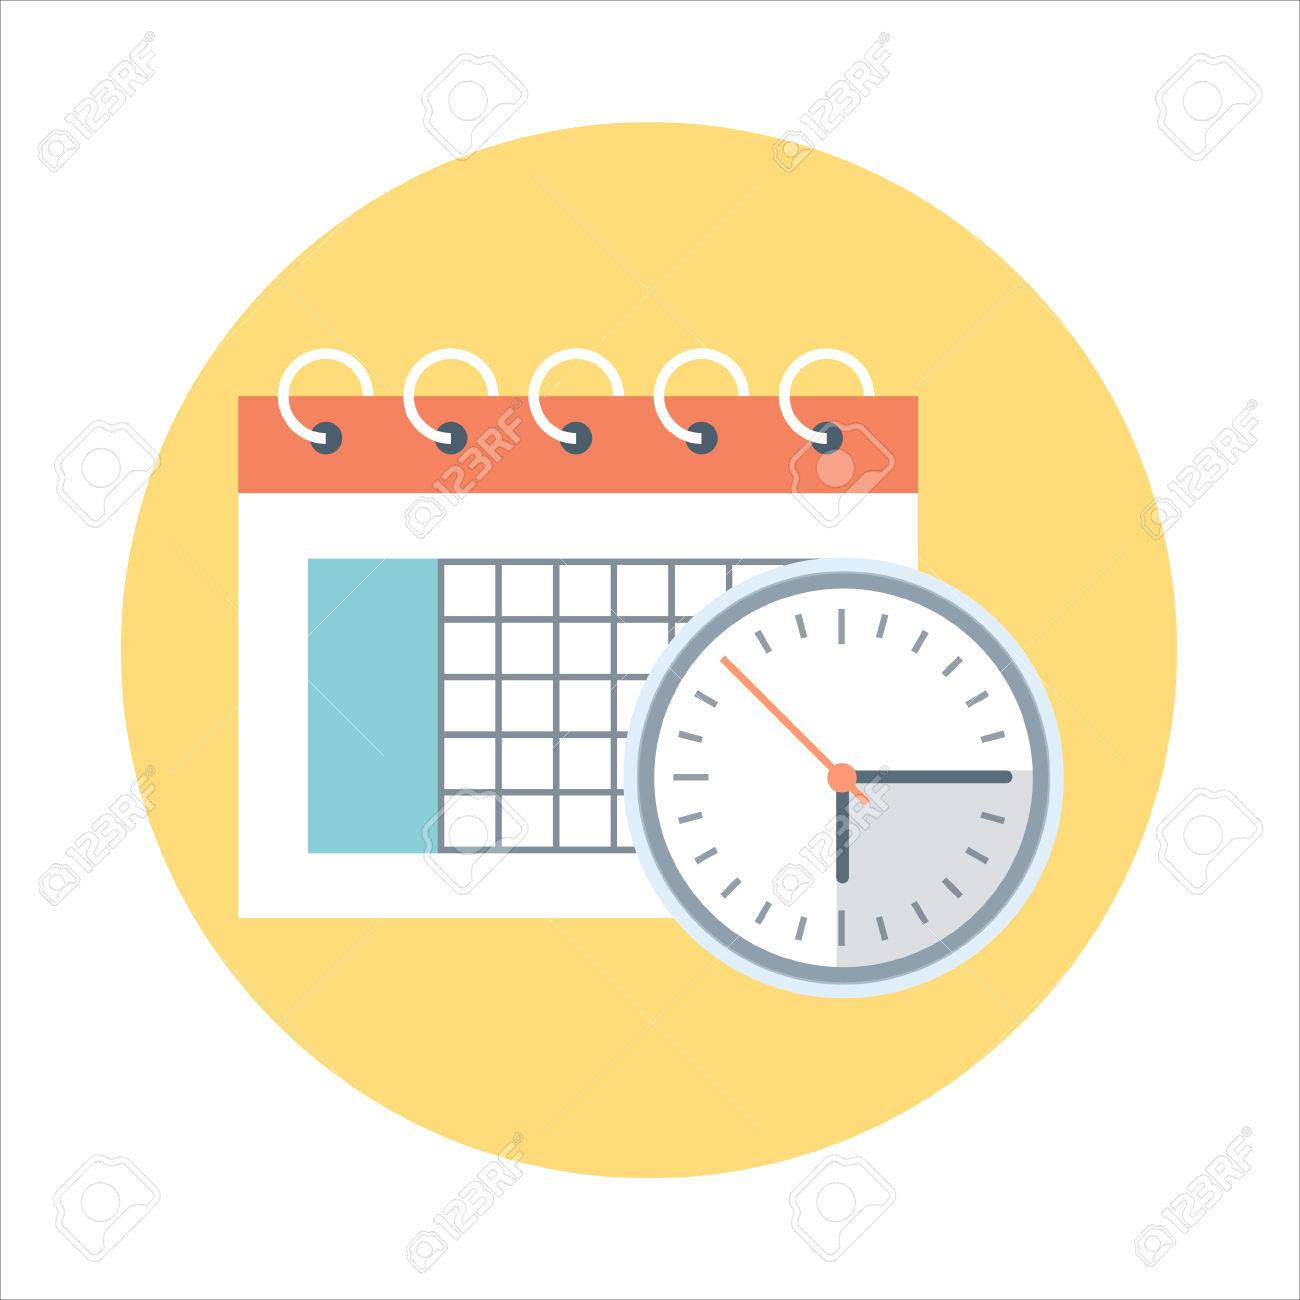 Calendar, time management flat style, colorful, vector icon for info graphics, websites, mobile and print media. - 55927171